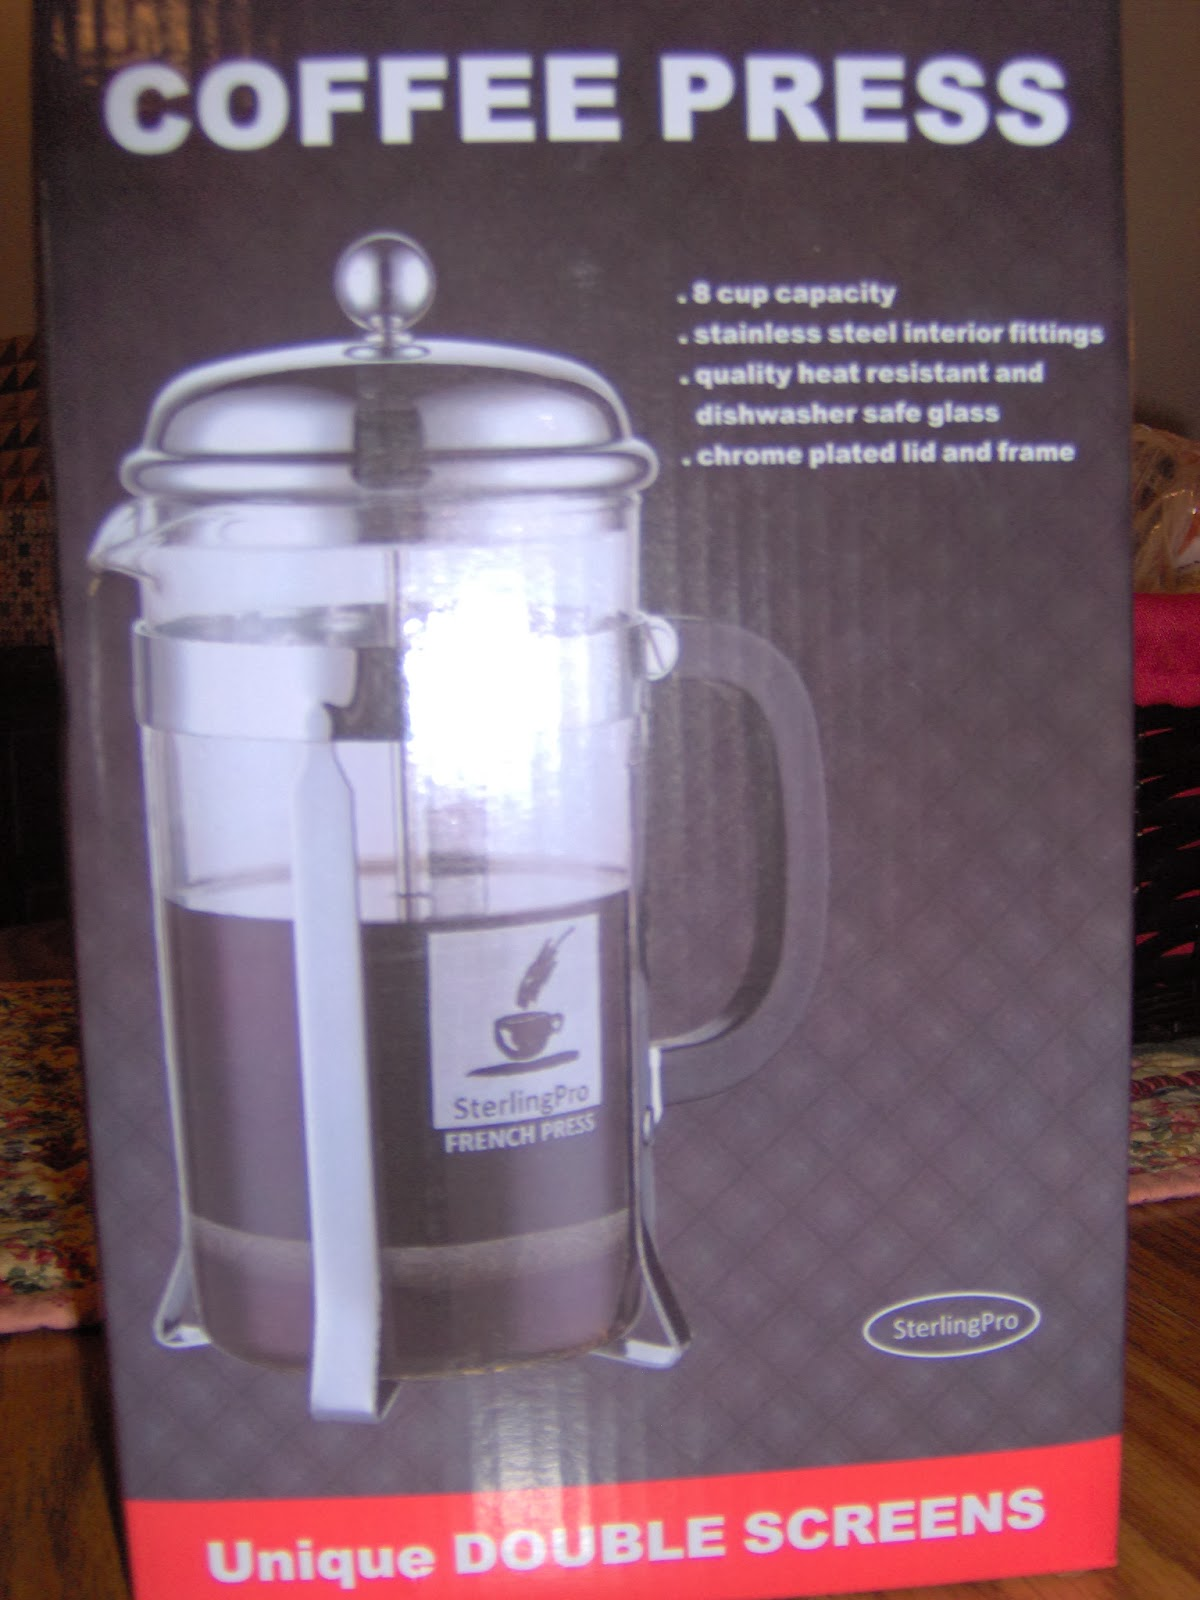 SterlingPro 8-Cup French Coffee Press